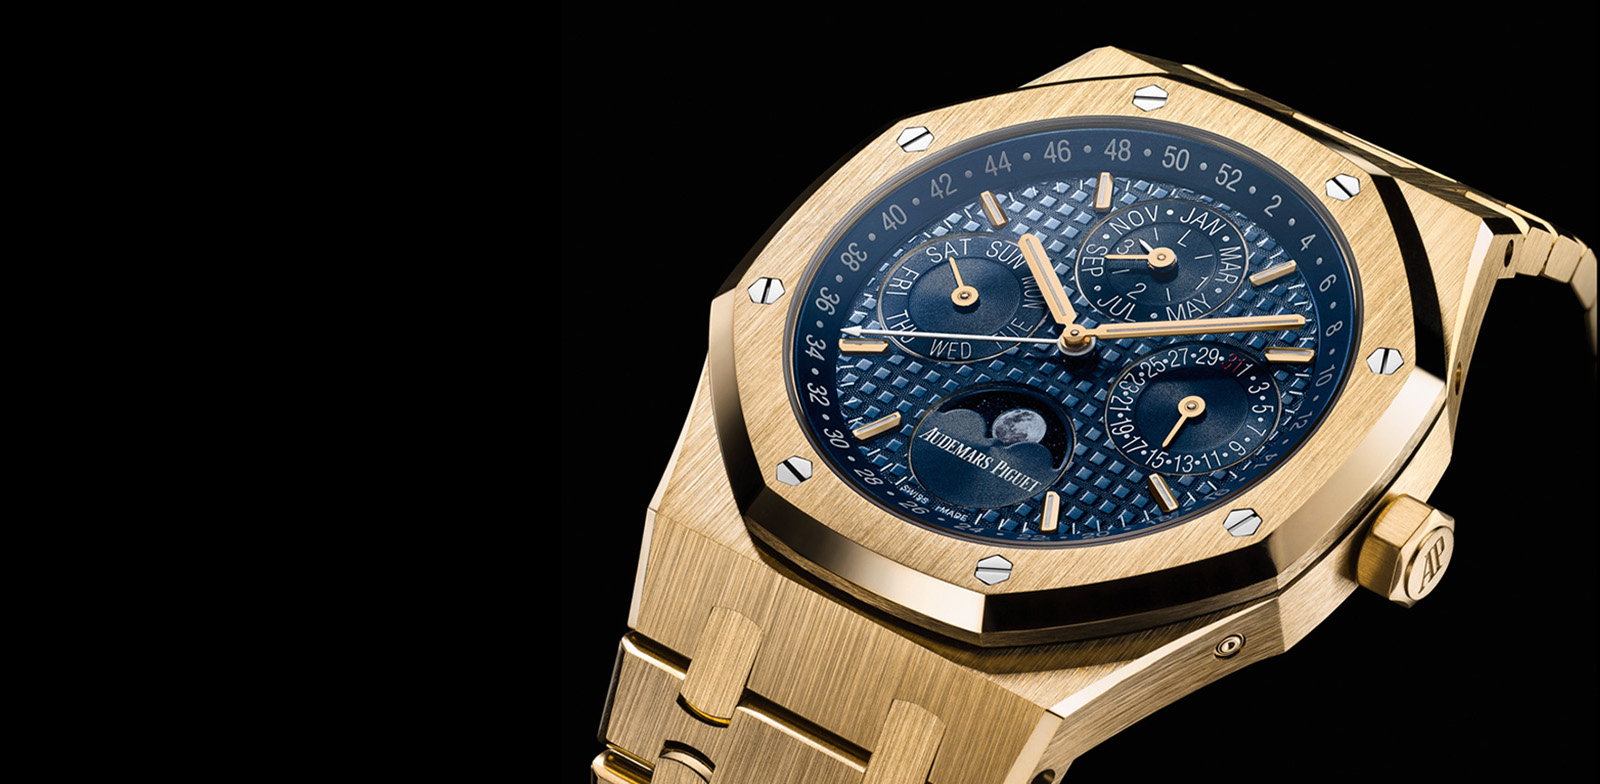 Audemars Piguet Royal Oak Perpetual Calendar Yellow Gold portada